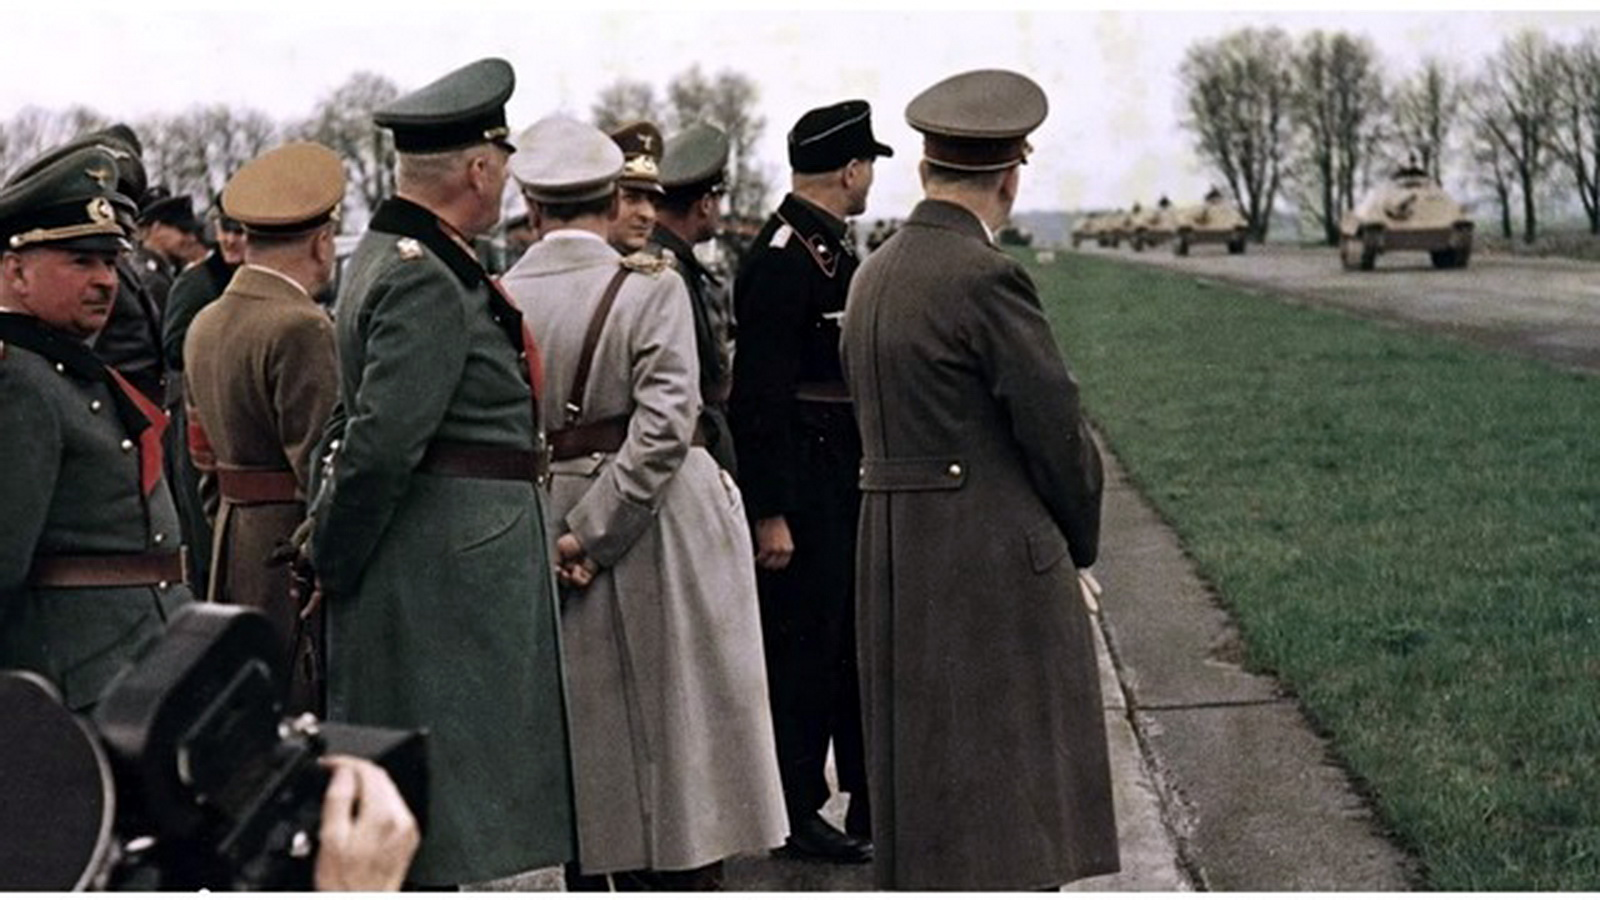 Color Adolf Hitler autobahn parade hetzer nazi officials.jpg